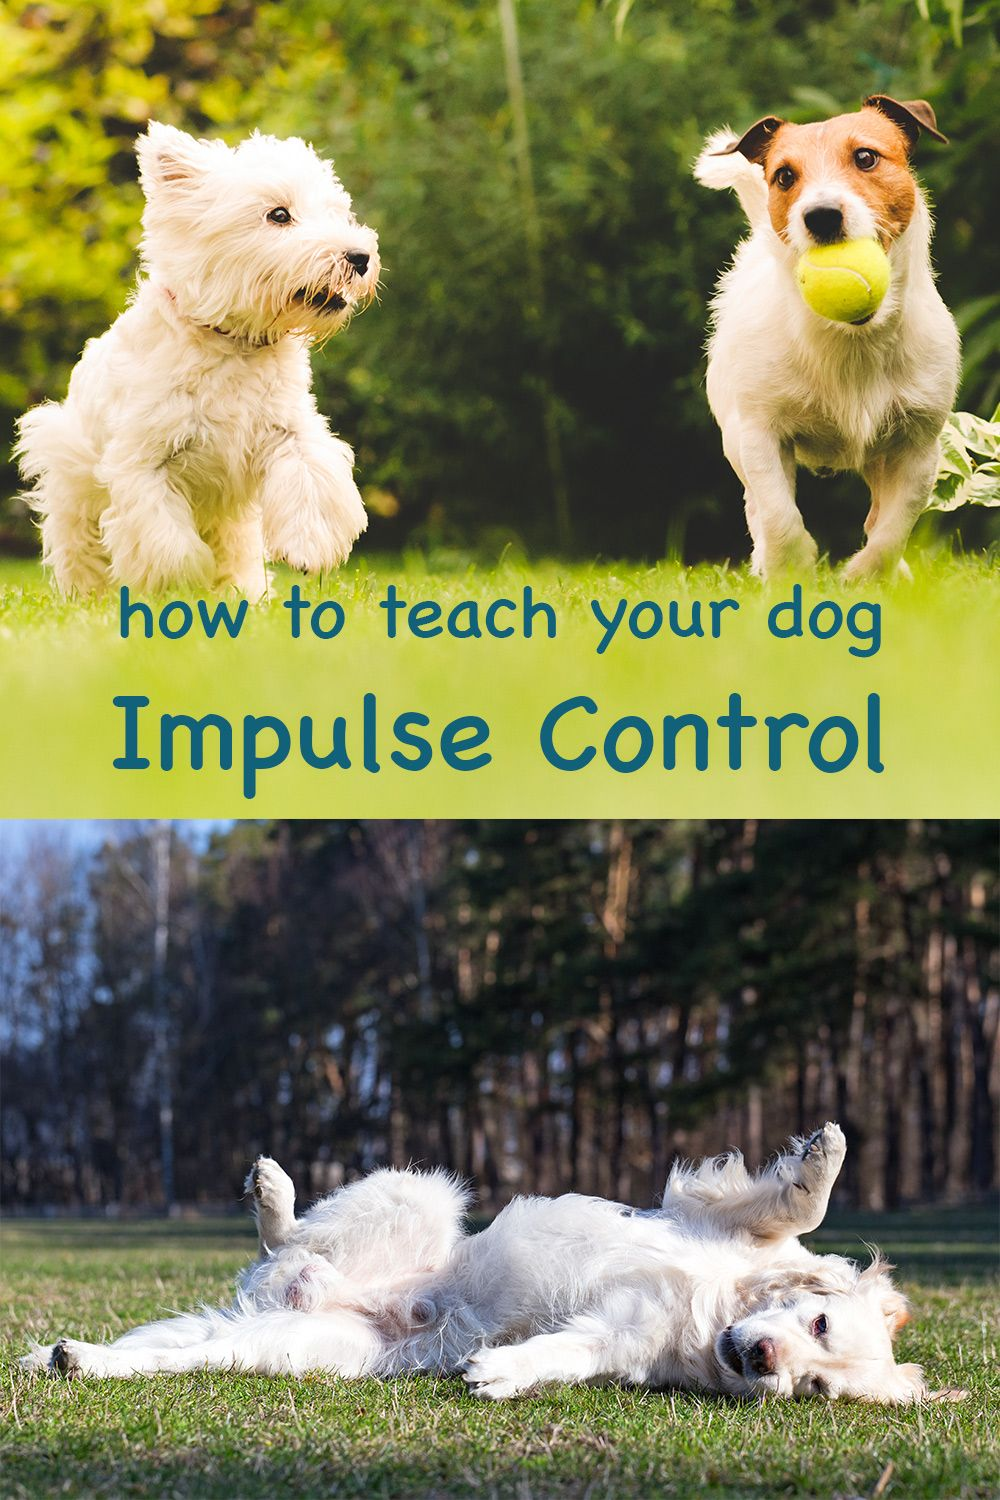 Teach Your Dog Impulse Control Exercises to Help With